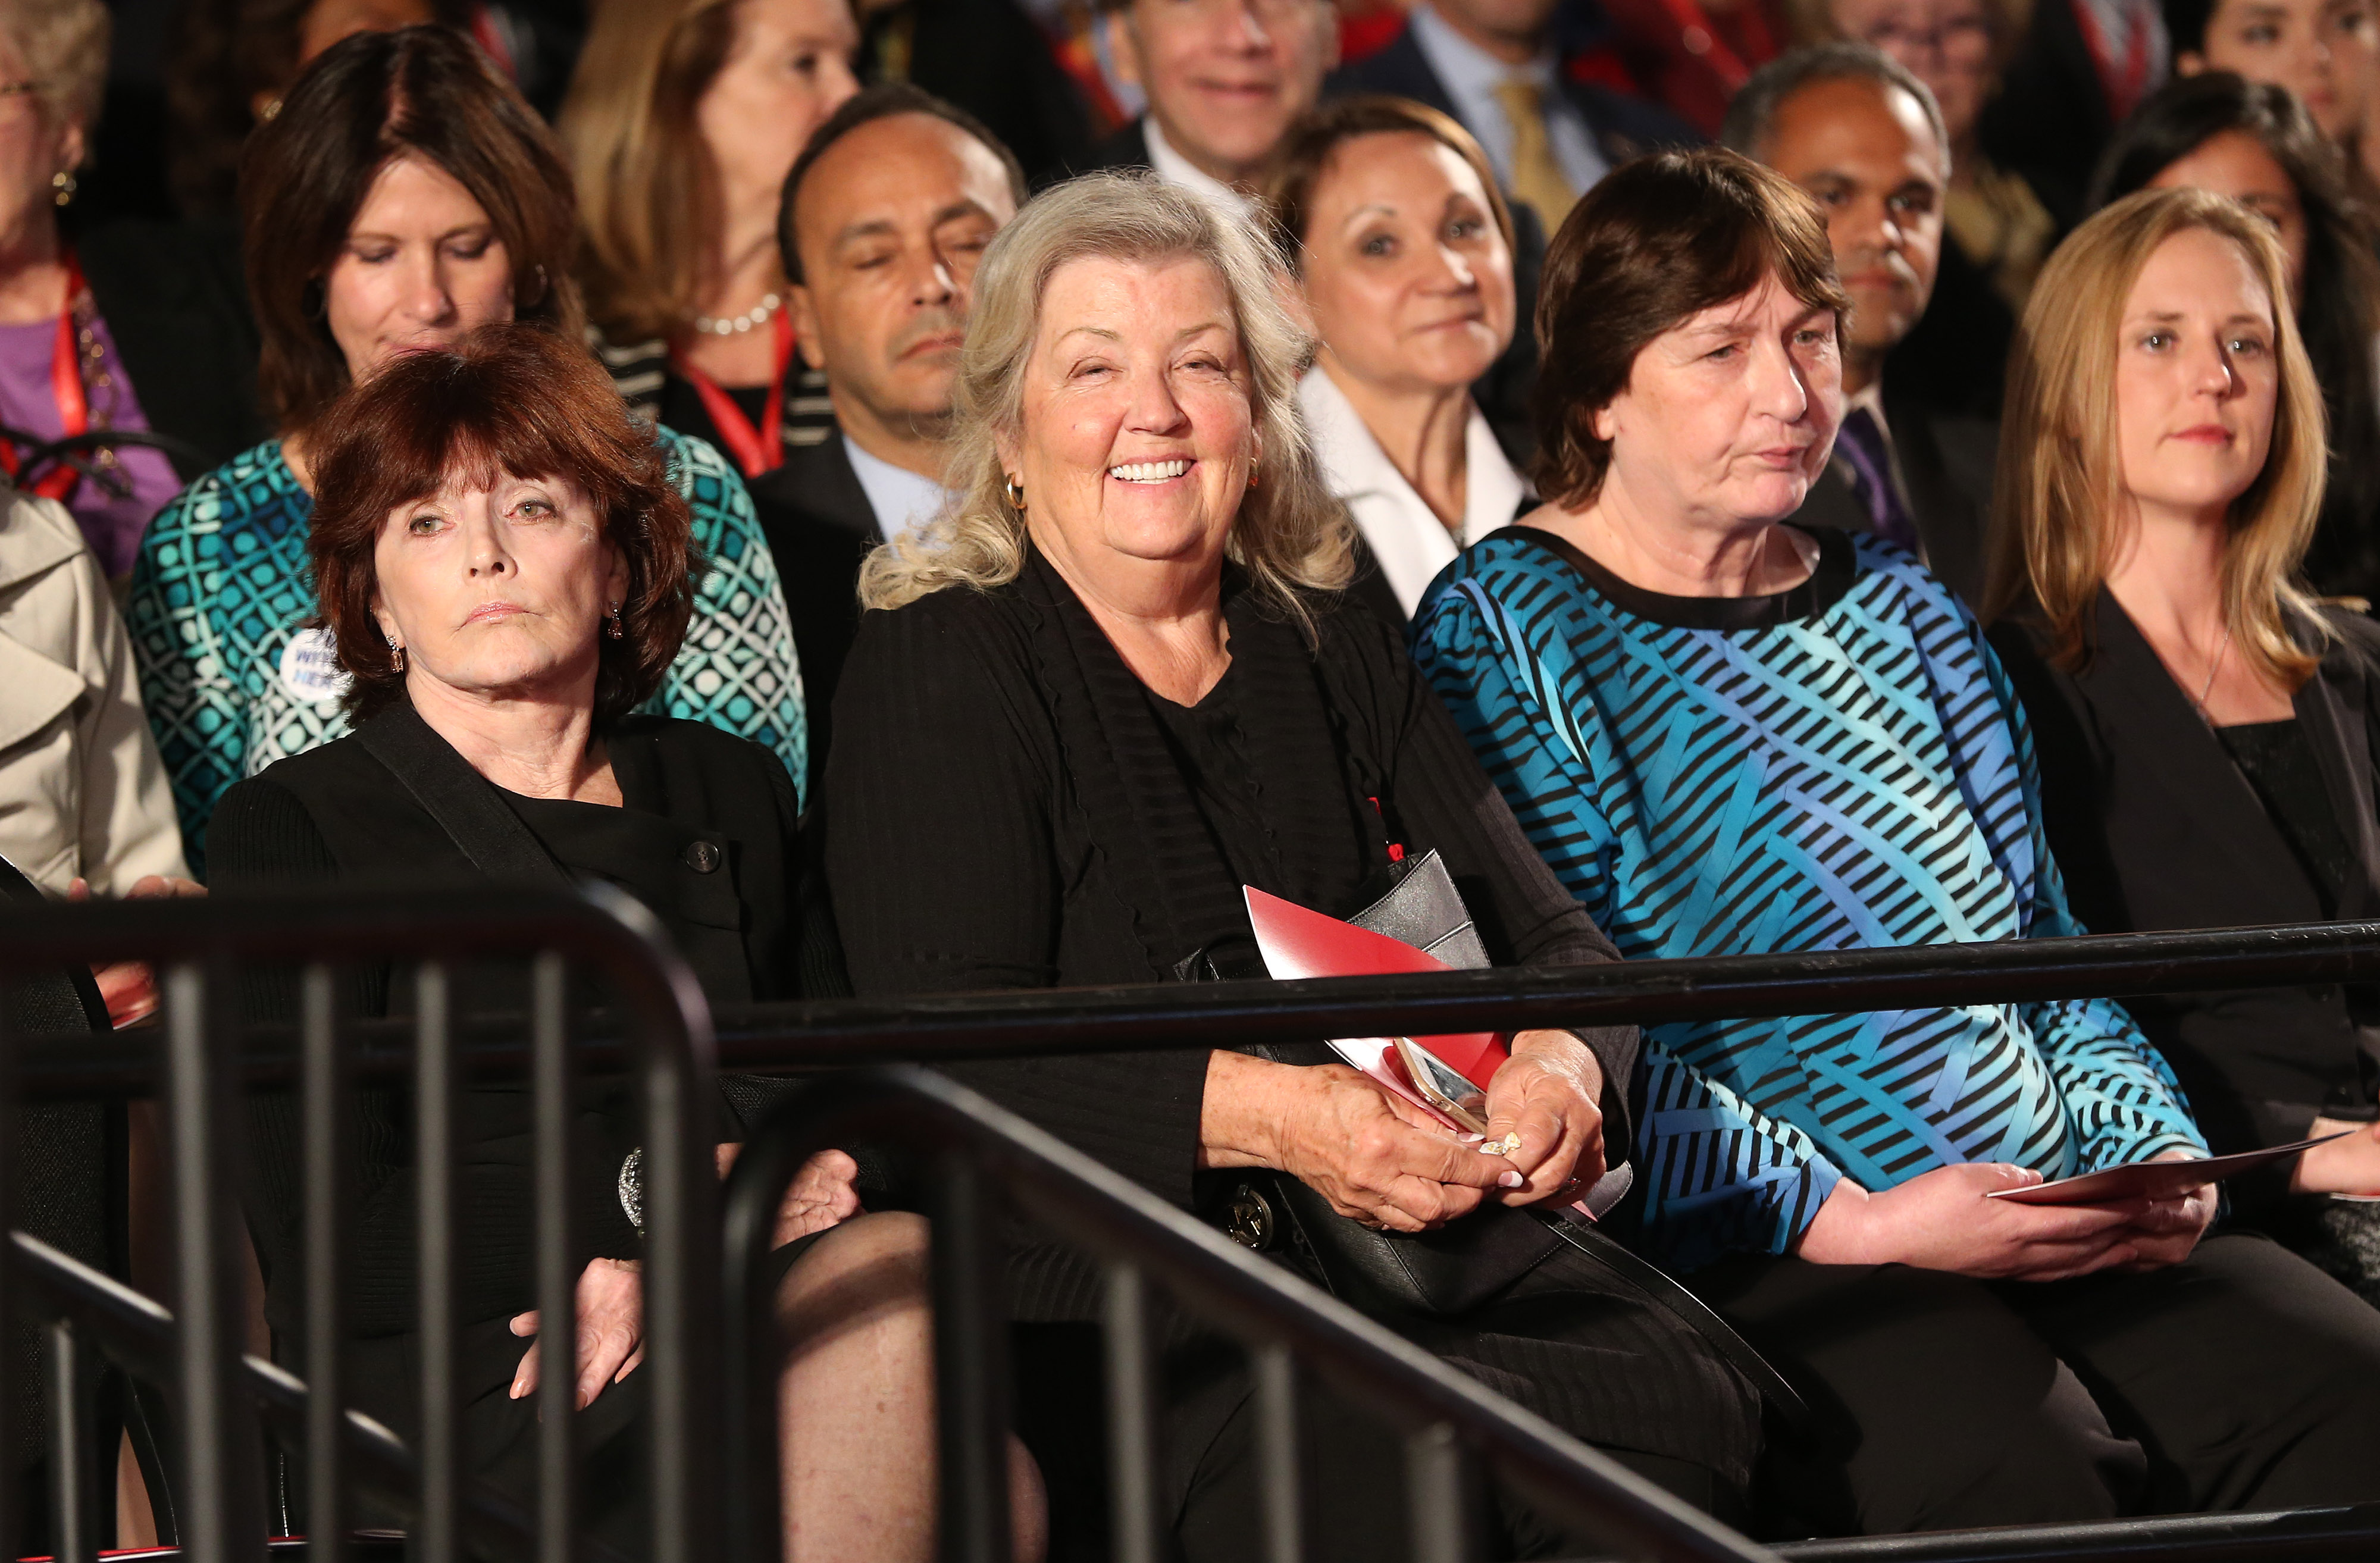 Kathleen Willey, from left, Juanita Broaddrick, and Kathy Shelton sit in the audience ahead of the second U.S. presidential debate at Washington University in St. Louis, Missouri, U.S., on Sunday, Oct. 9, 2016. (Daniel Acker--Bloomberg via Getty Images)